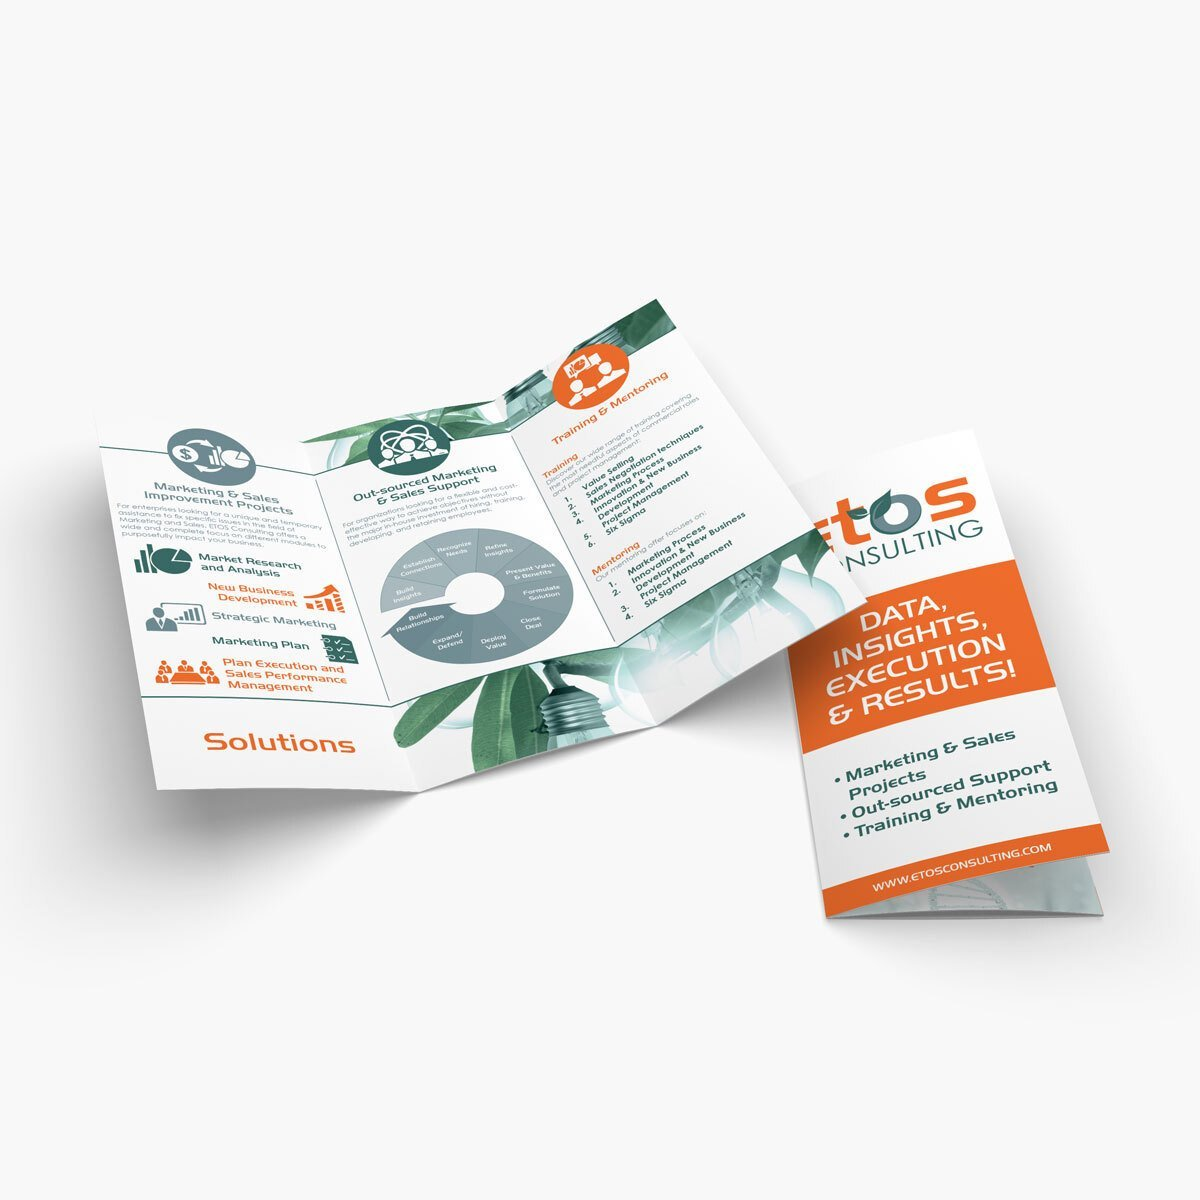 ETOS Consulting Brochure Design by BrandSwan, a graphic design company